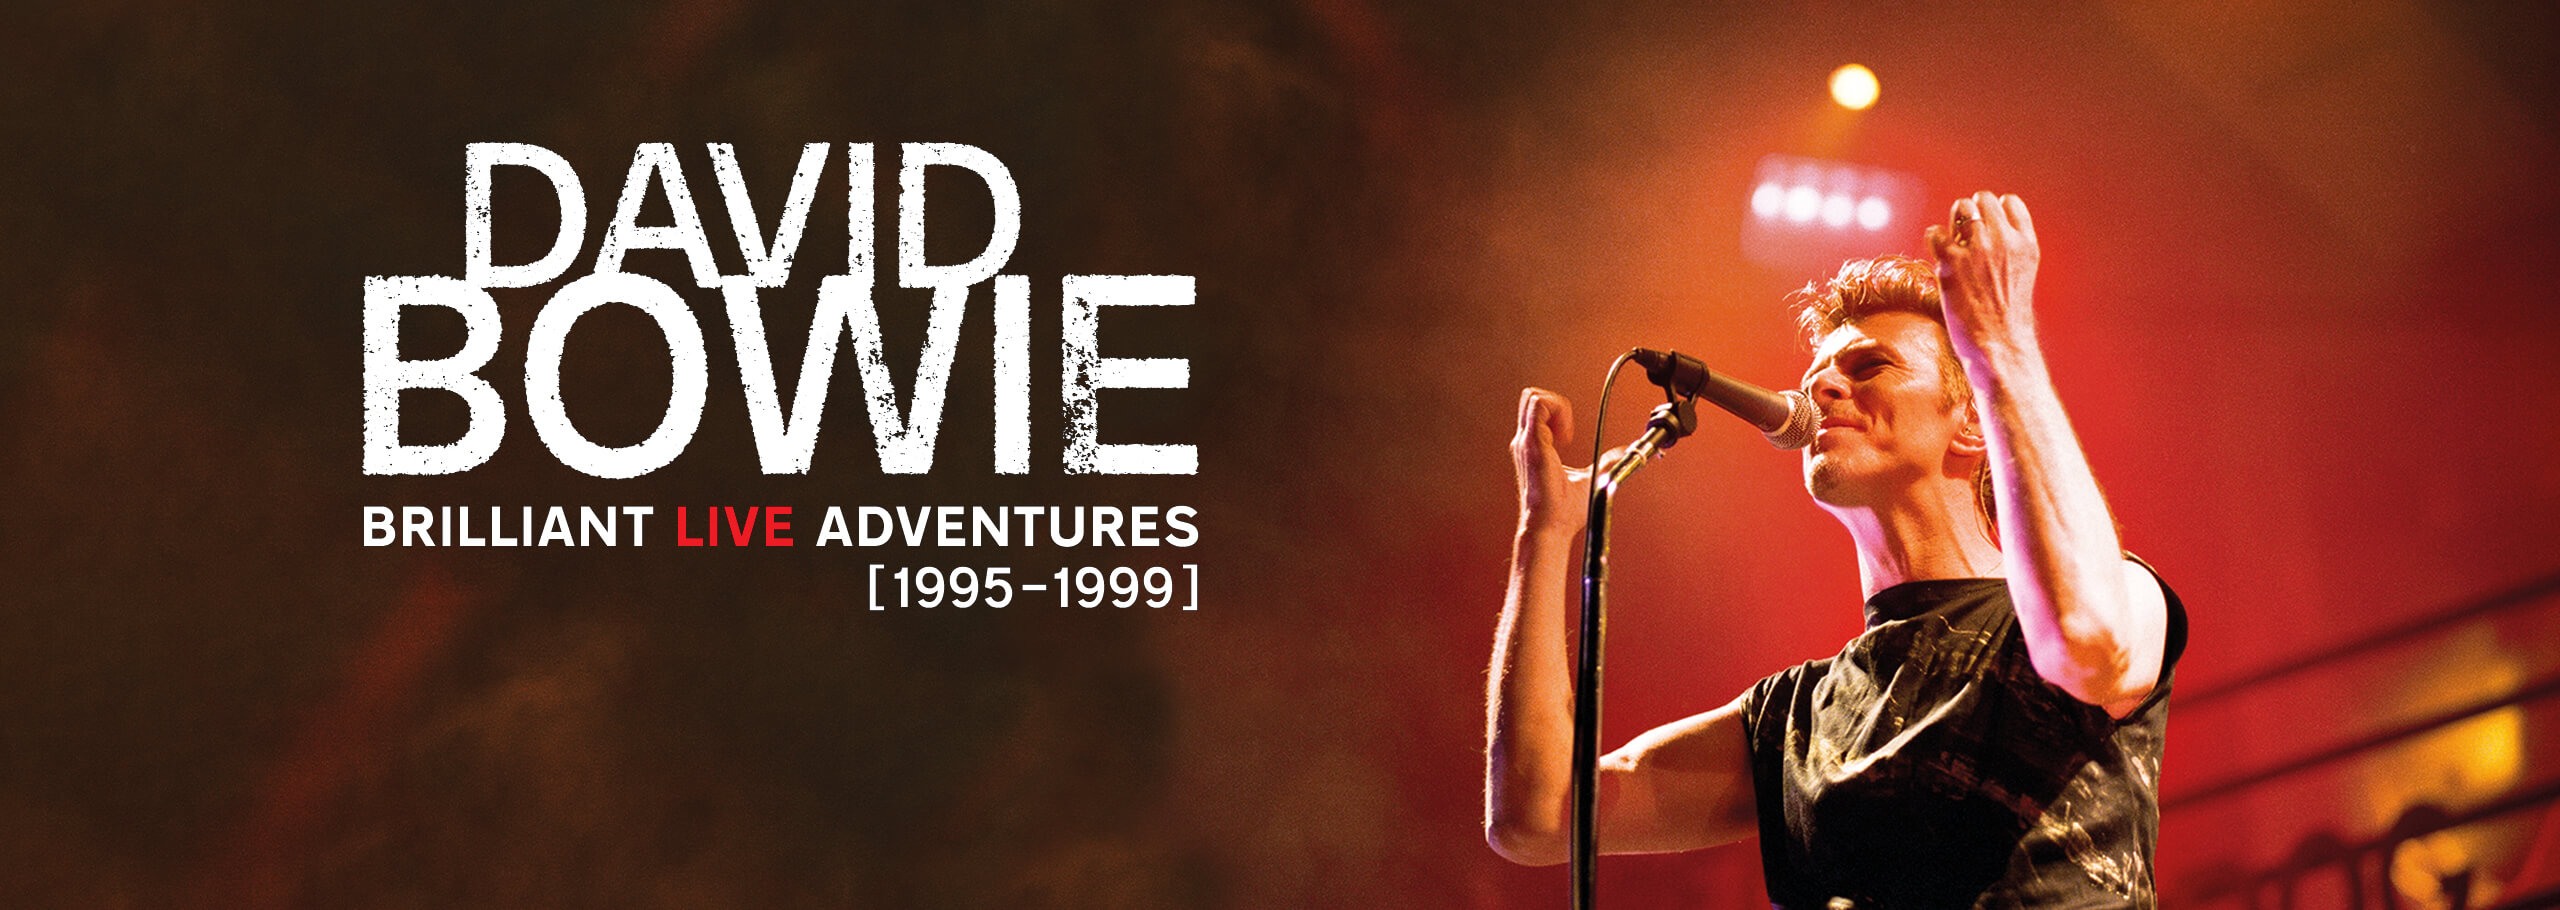 David Bowie Brilliant Live Adventures